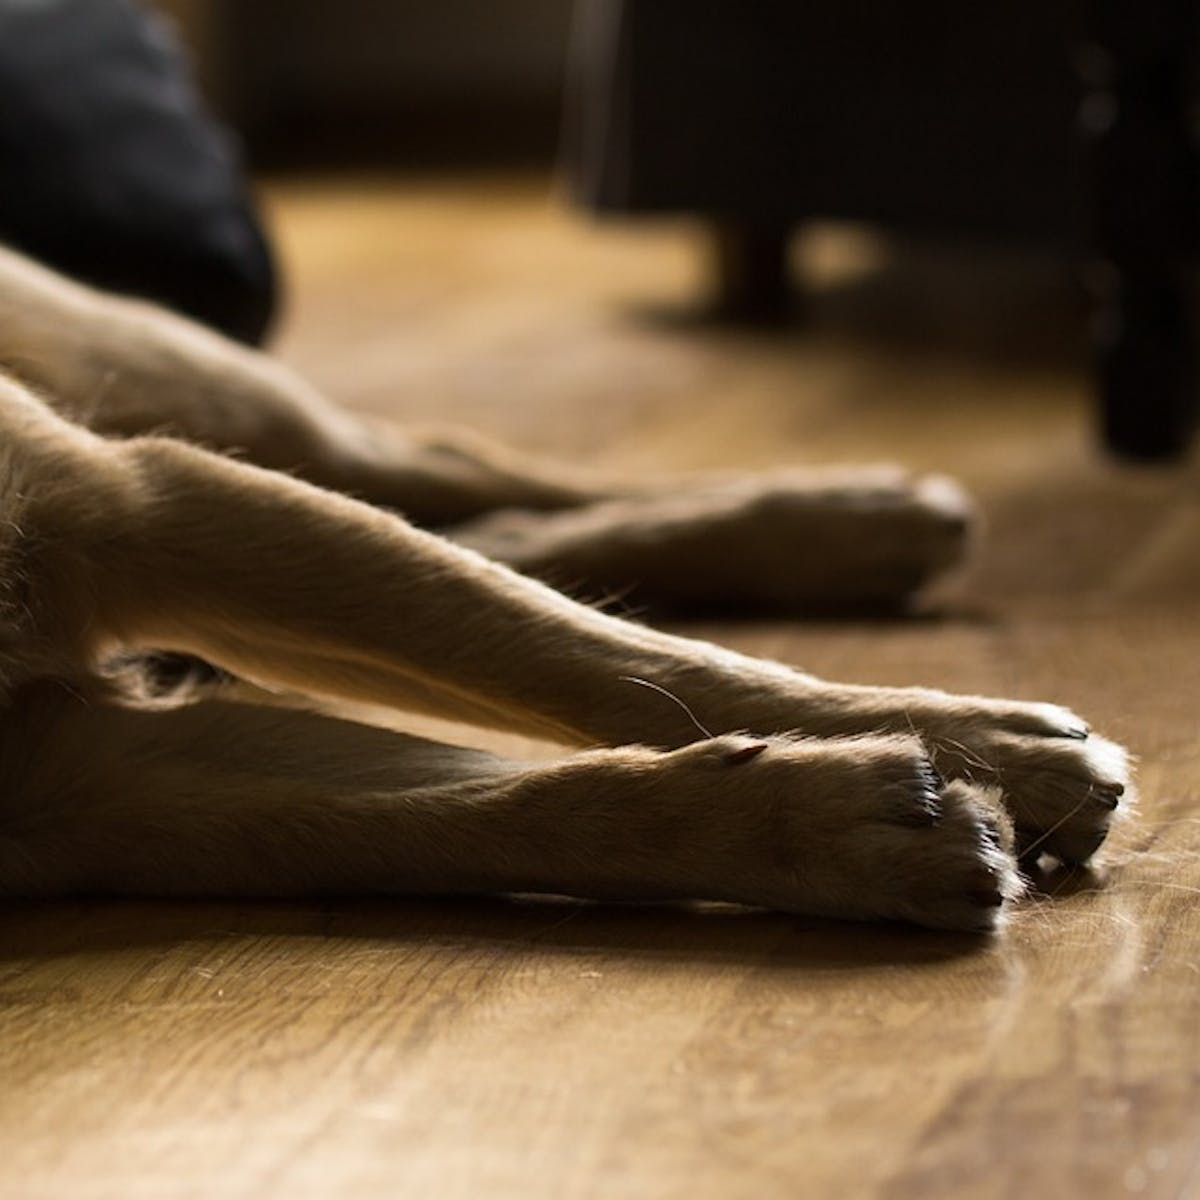 Does the Death of a Pet Warrant Bereavement Time? A Scientist Weighs In